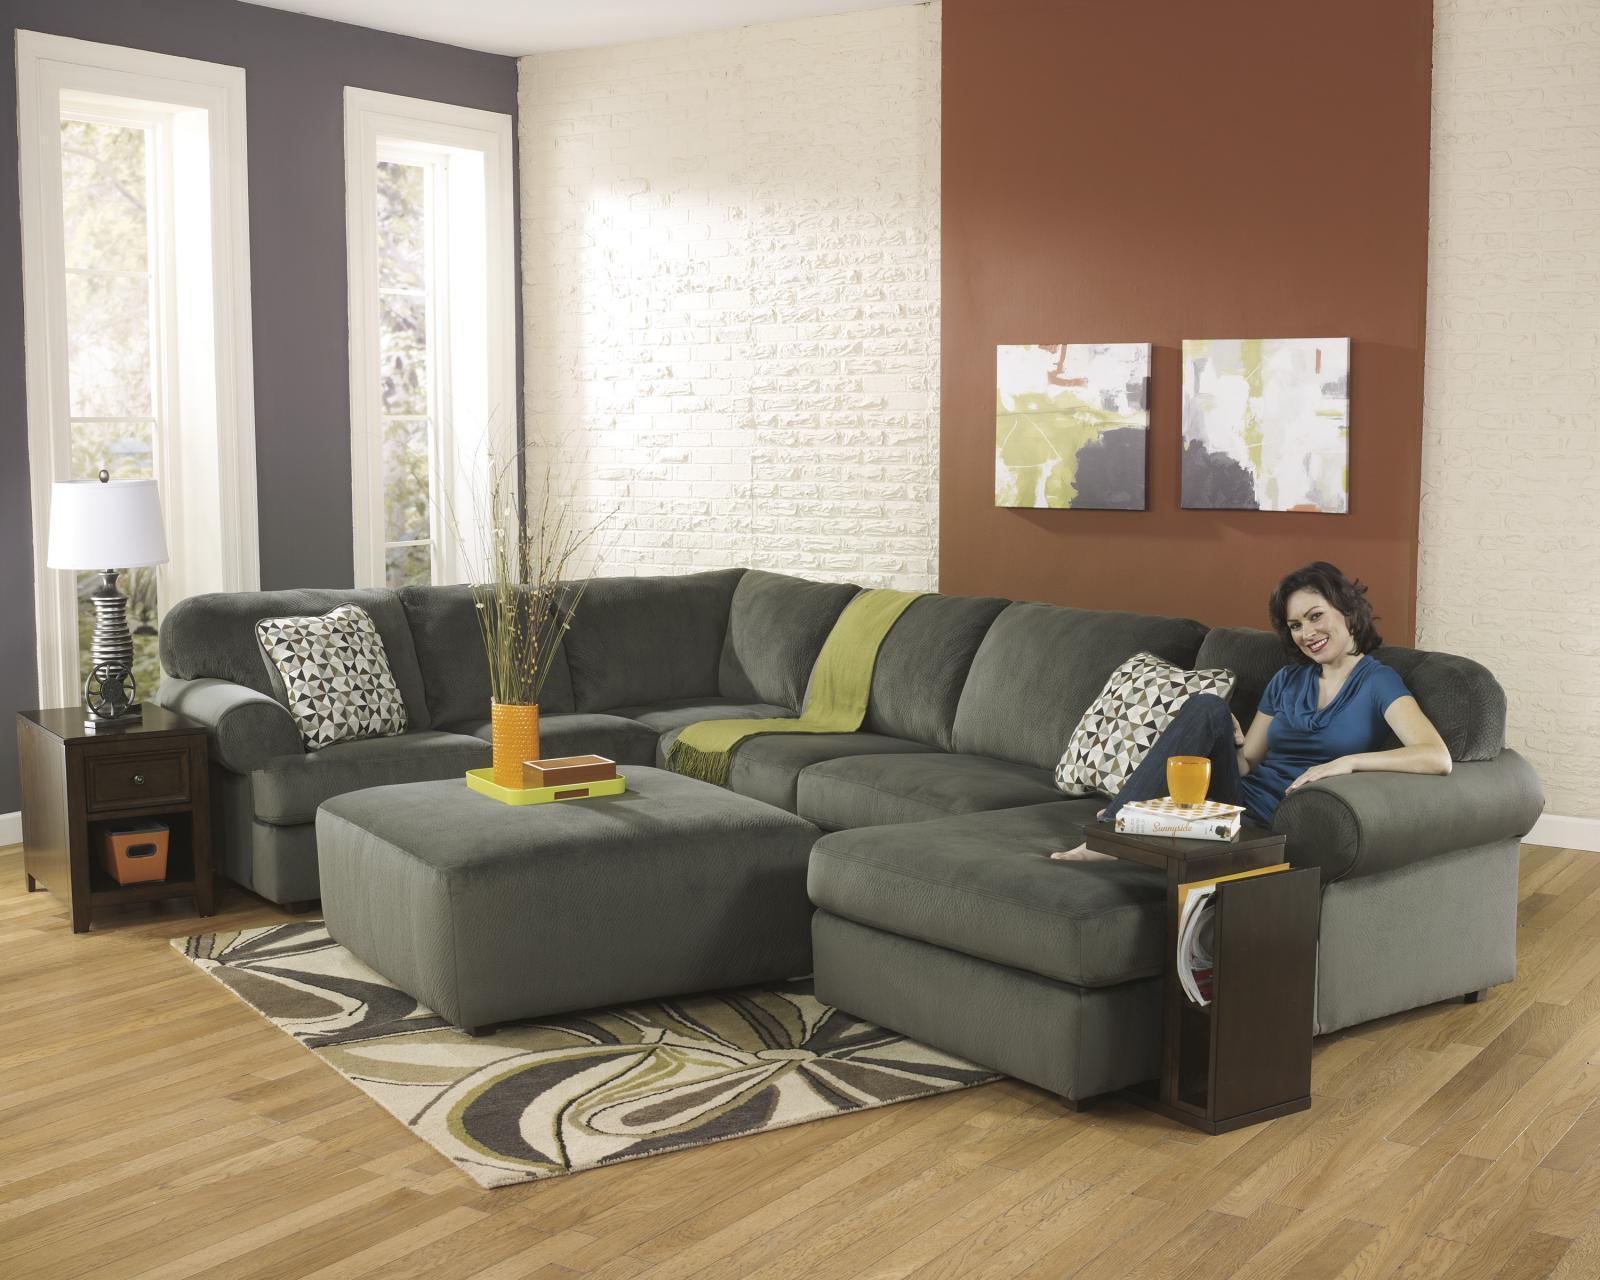 Ashley Jessa Place Living Room Sectional 4pc in Pewter Contemporary Right Facing